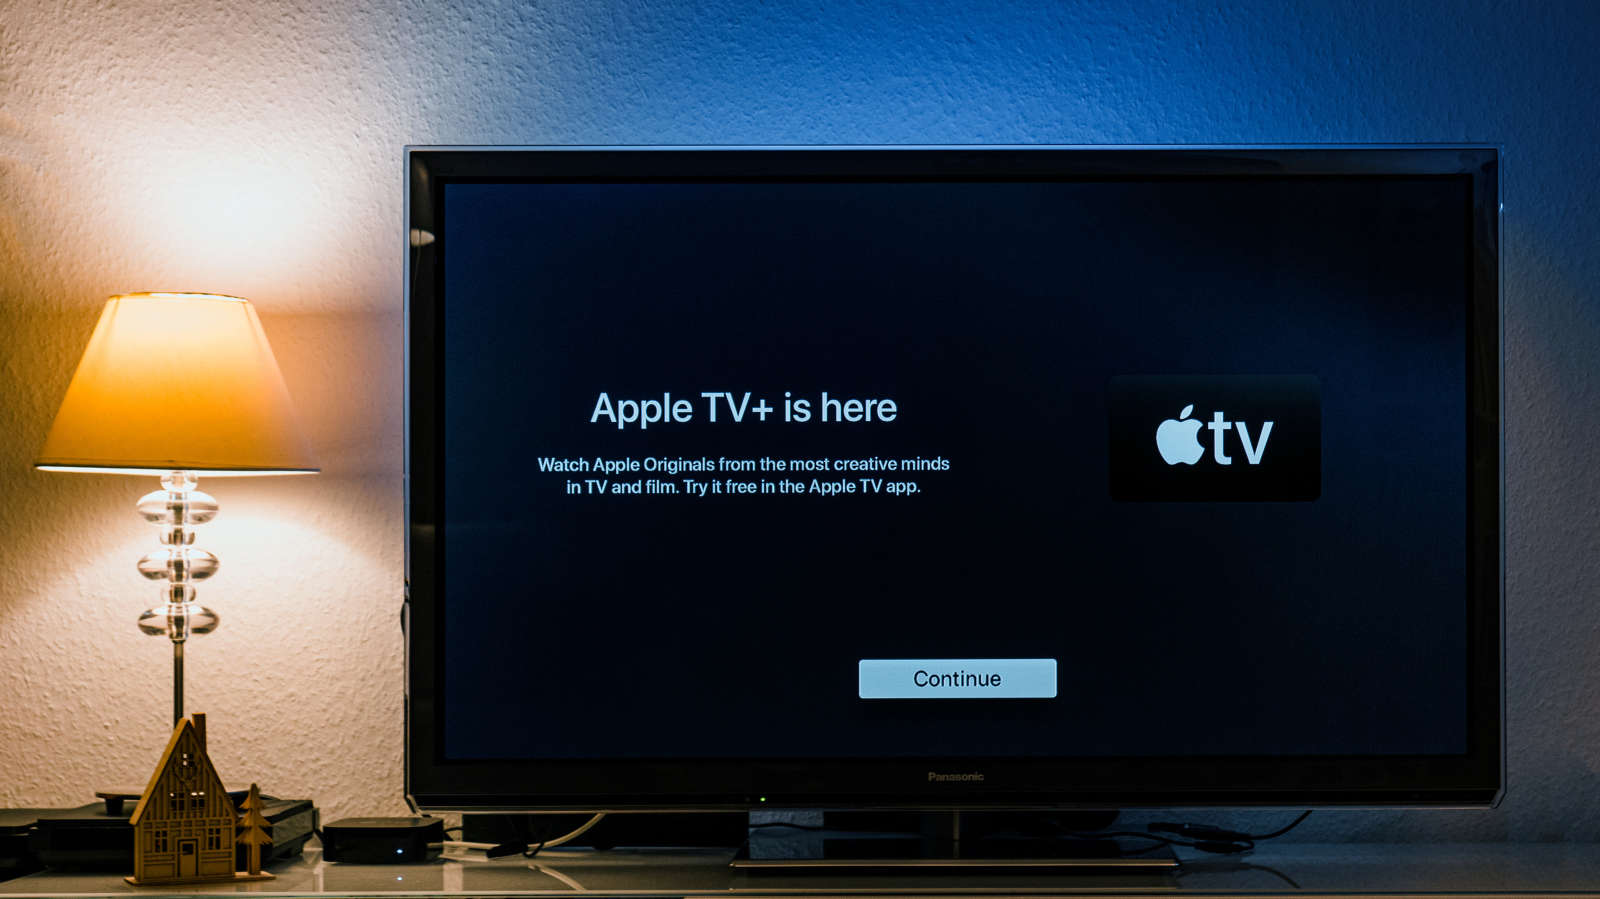 How to Get Apple TV+ Free for a Year